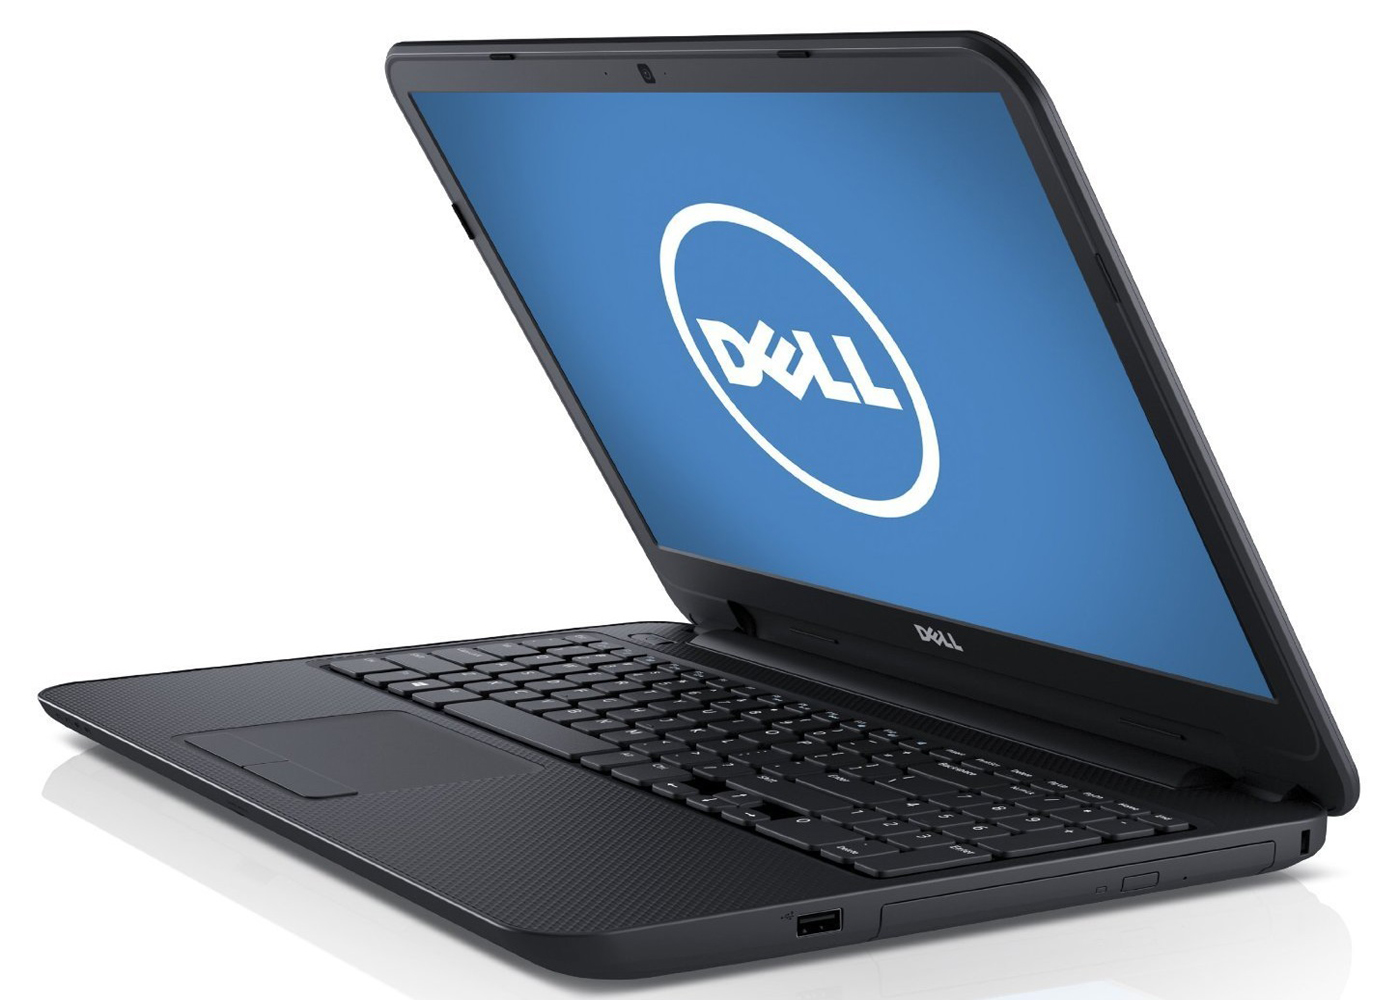 dell inspiron 15.6 inch laptop review